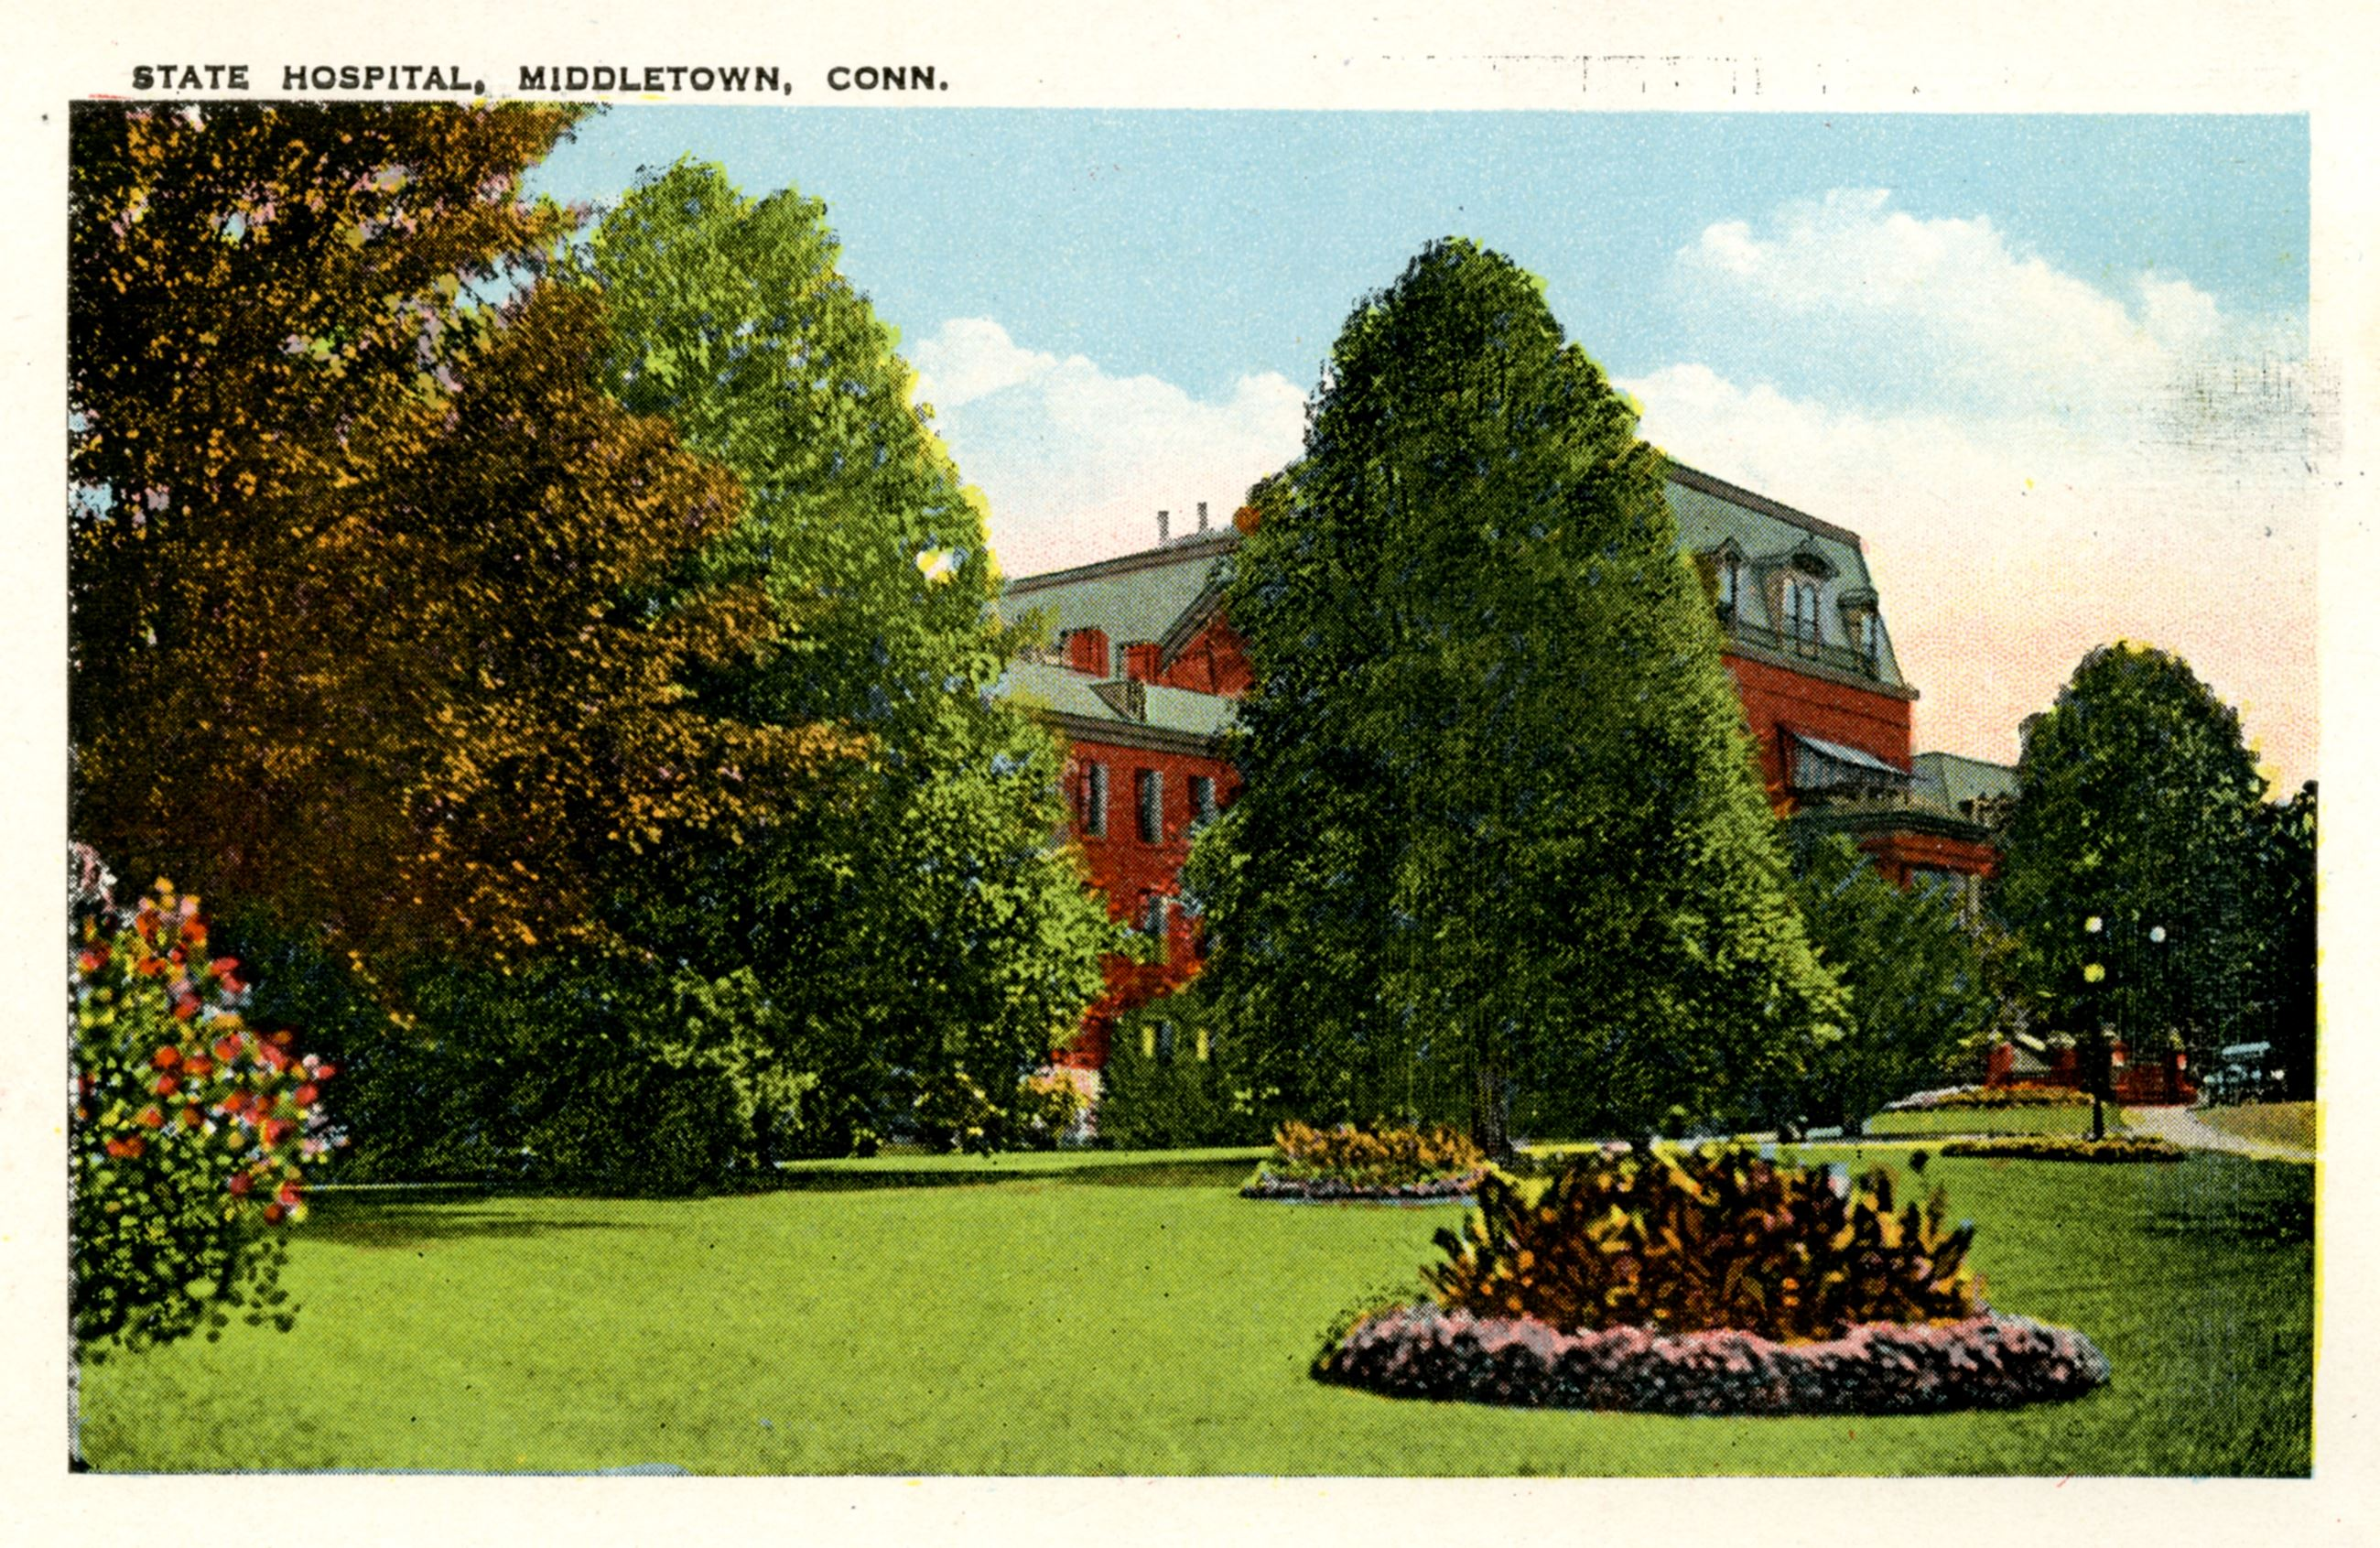 Historical Image of Connecticut Valley Hospital